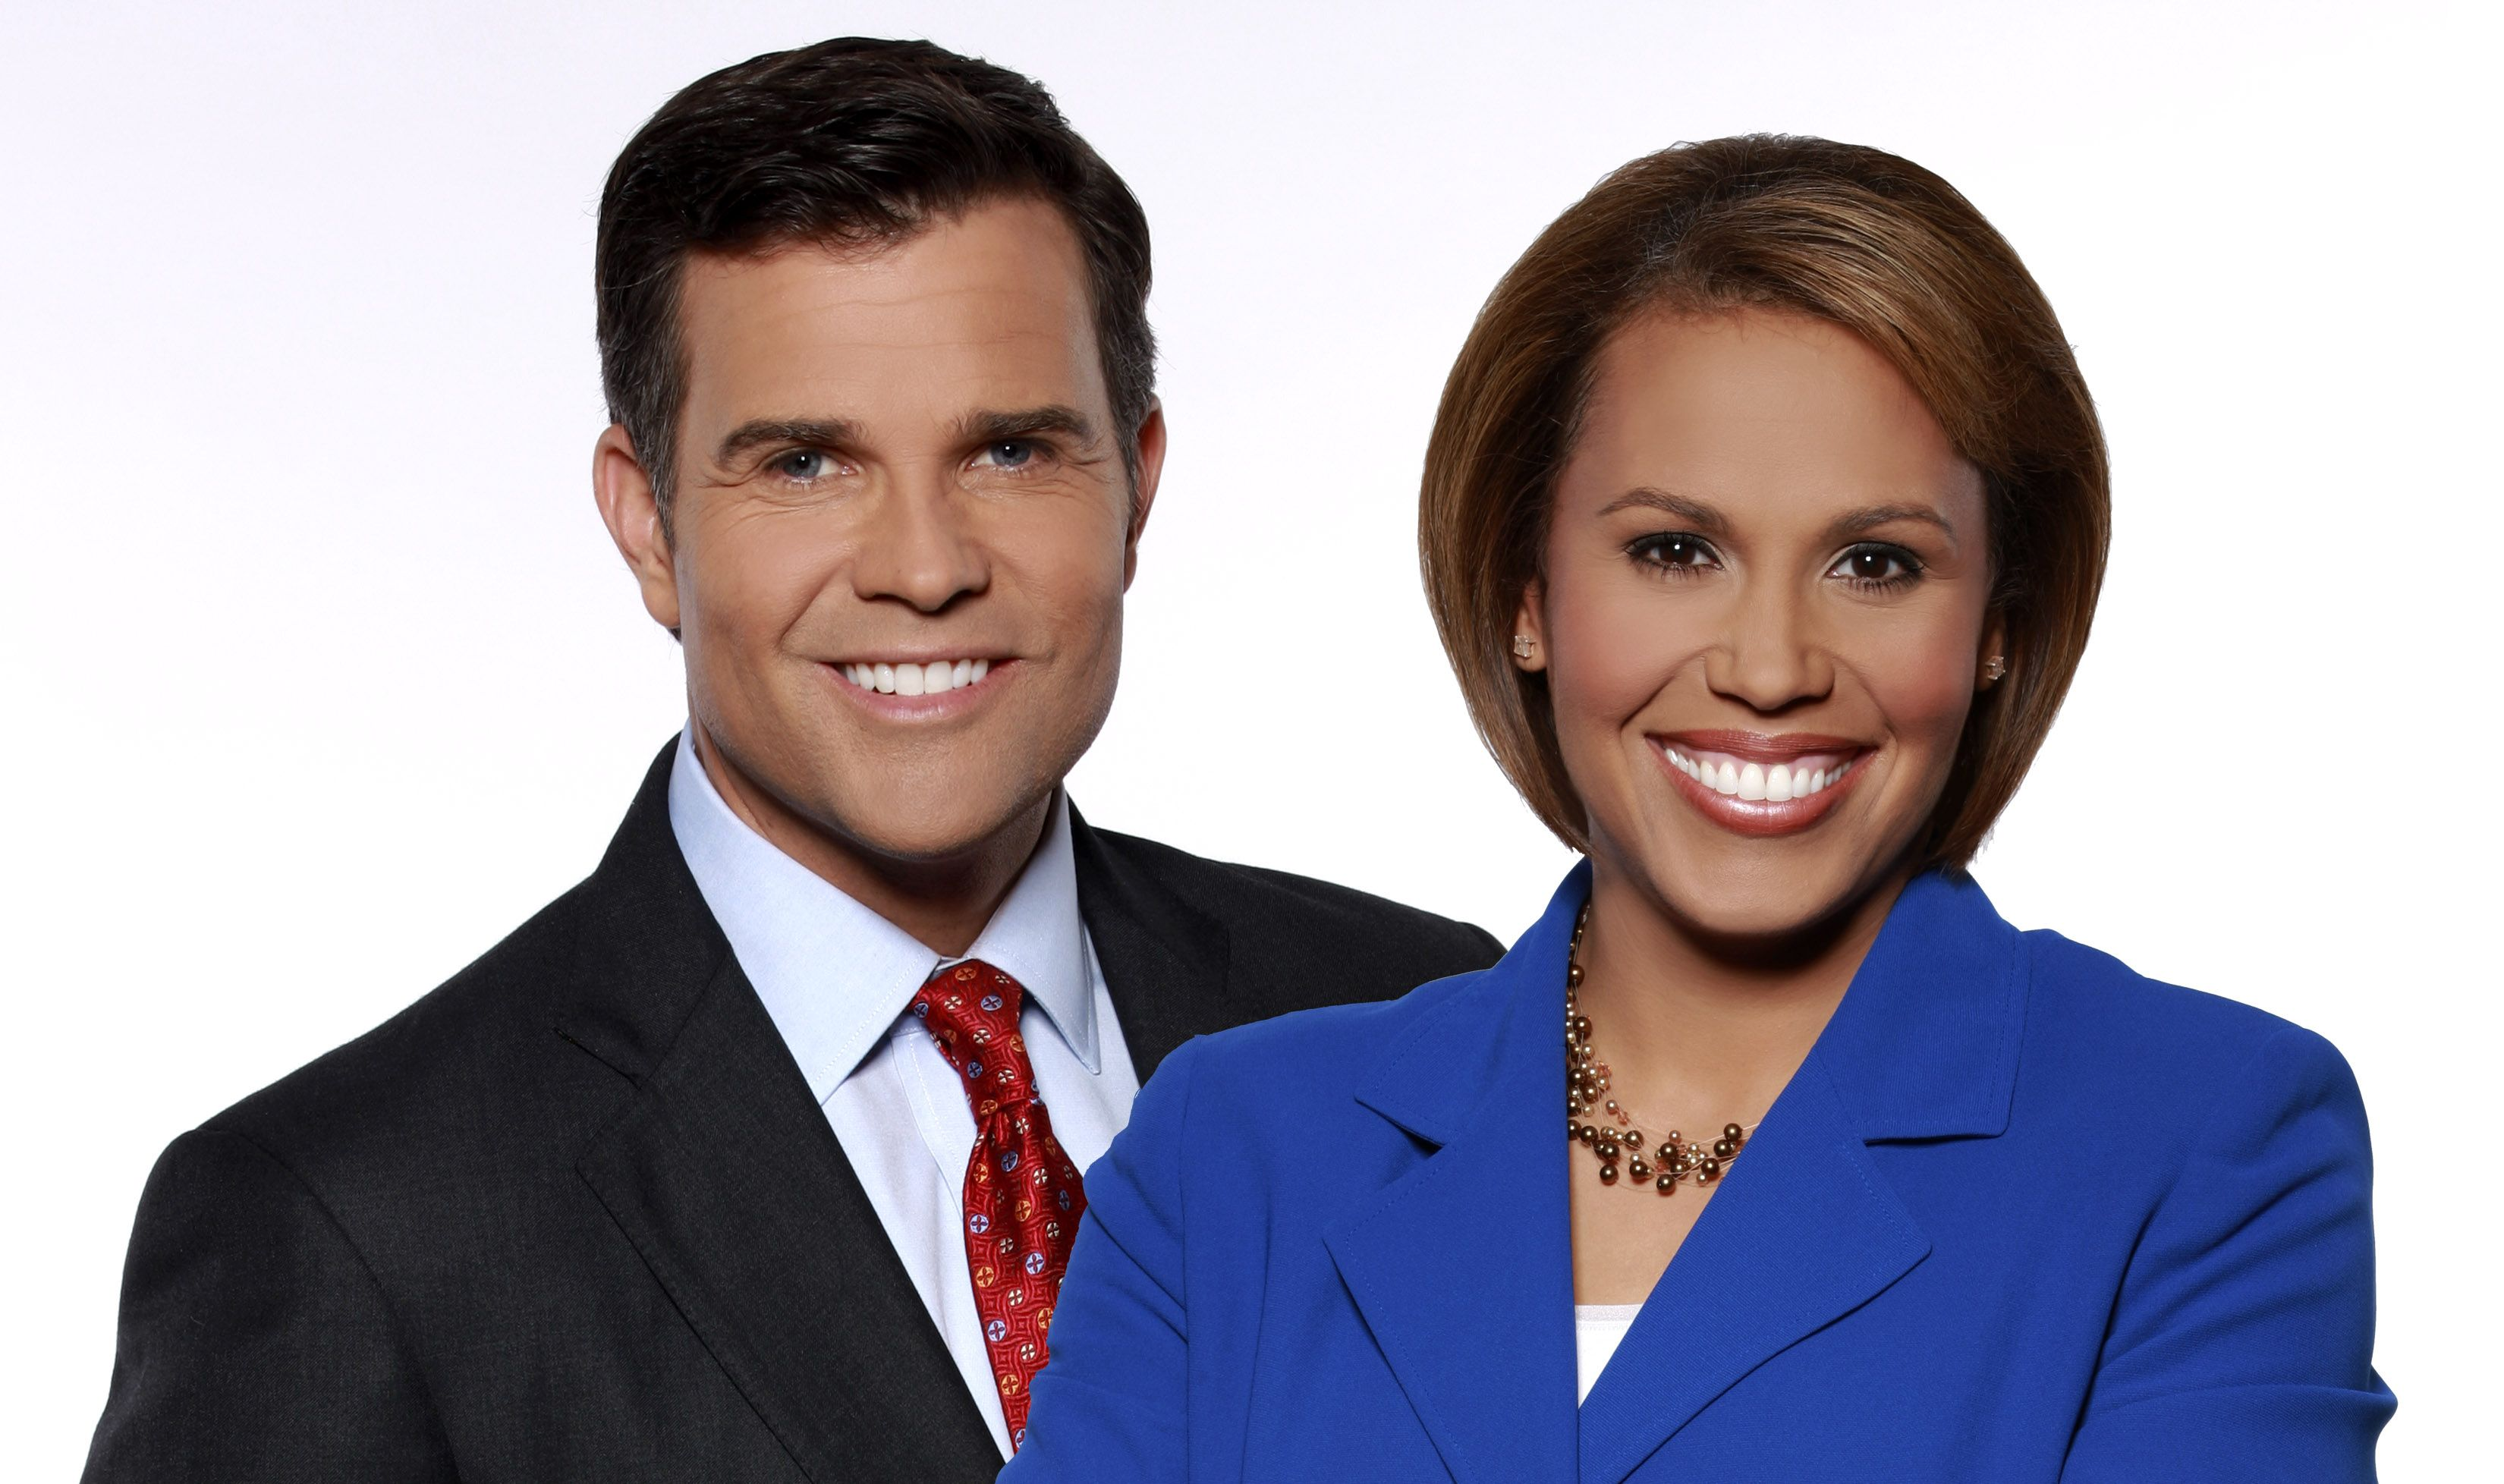 Justin Farmer and Jovita Moore | TV | Channel 2 news